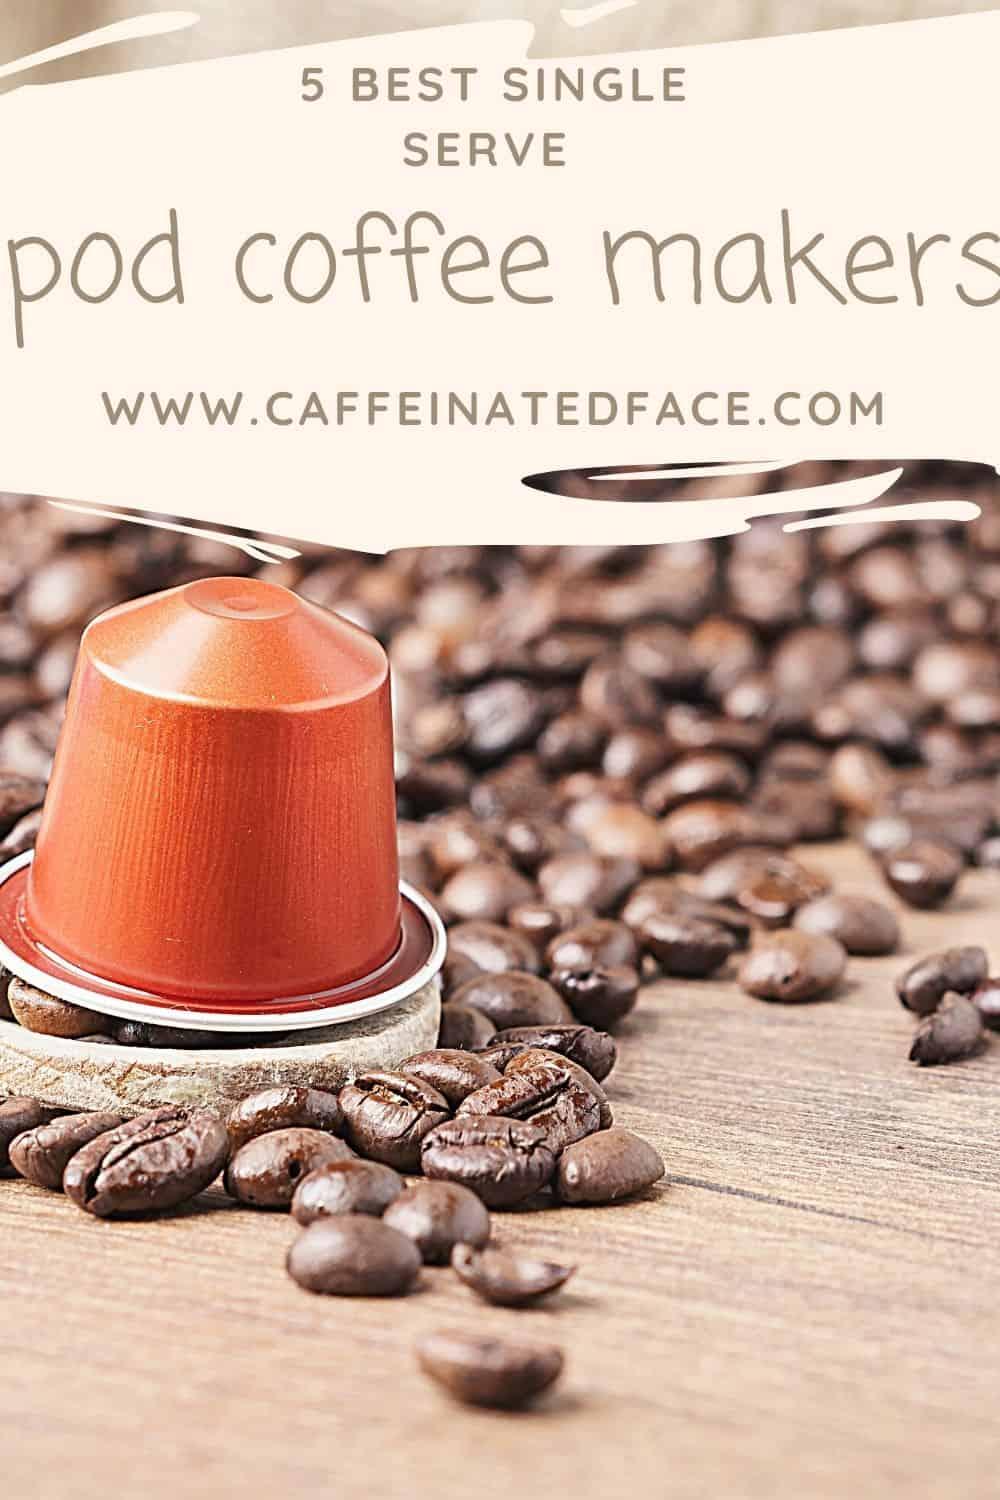 best single serve pod coffee makers (1)